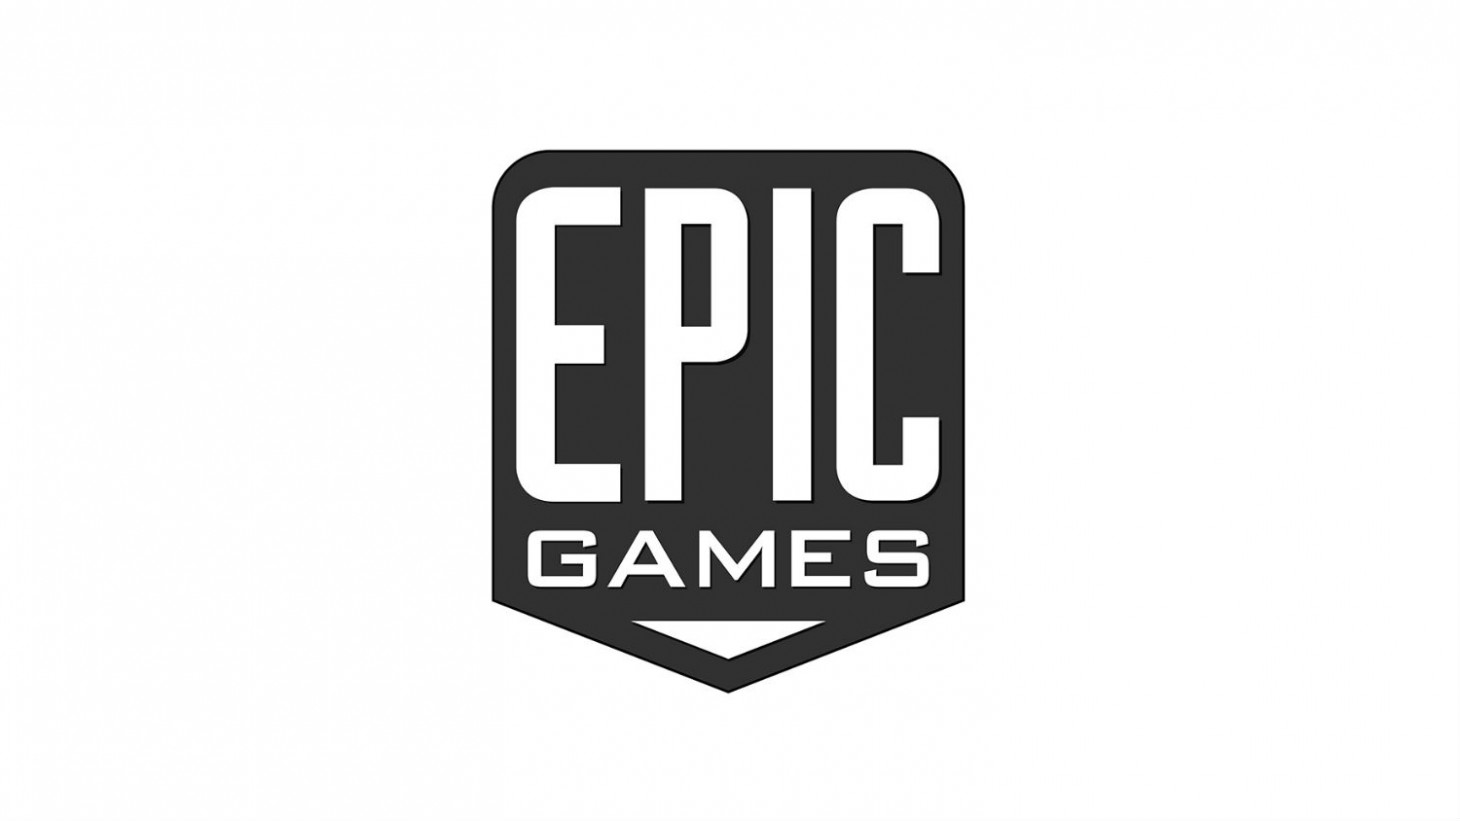 Tim Sweeney Answers Questions About The New Epic Games Store - Game